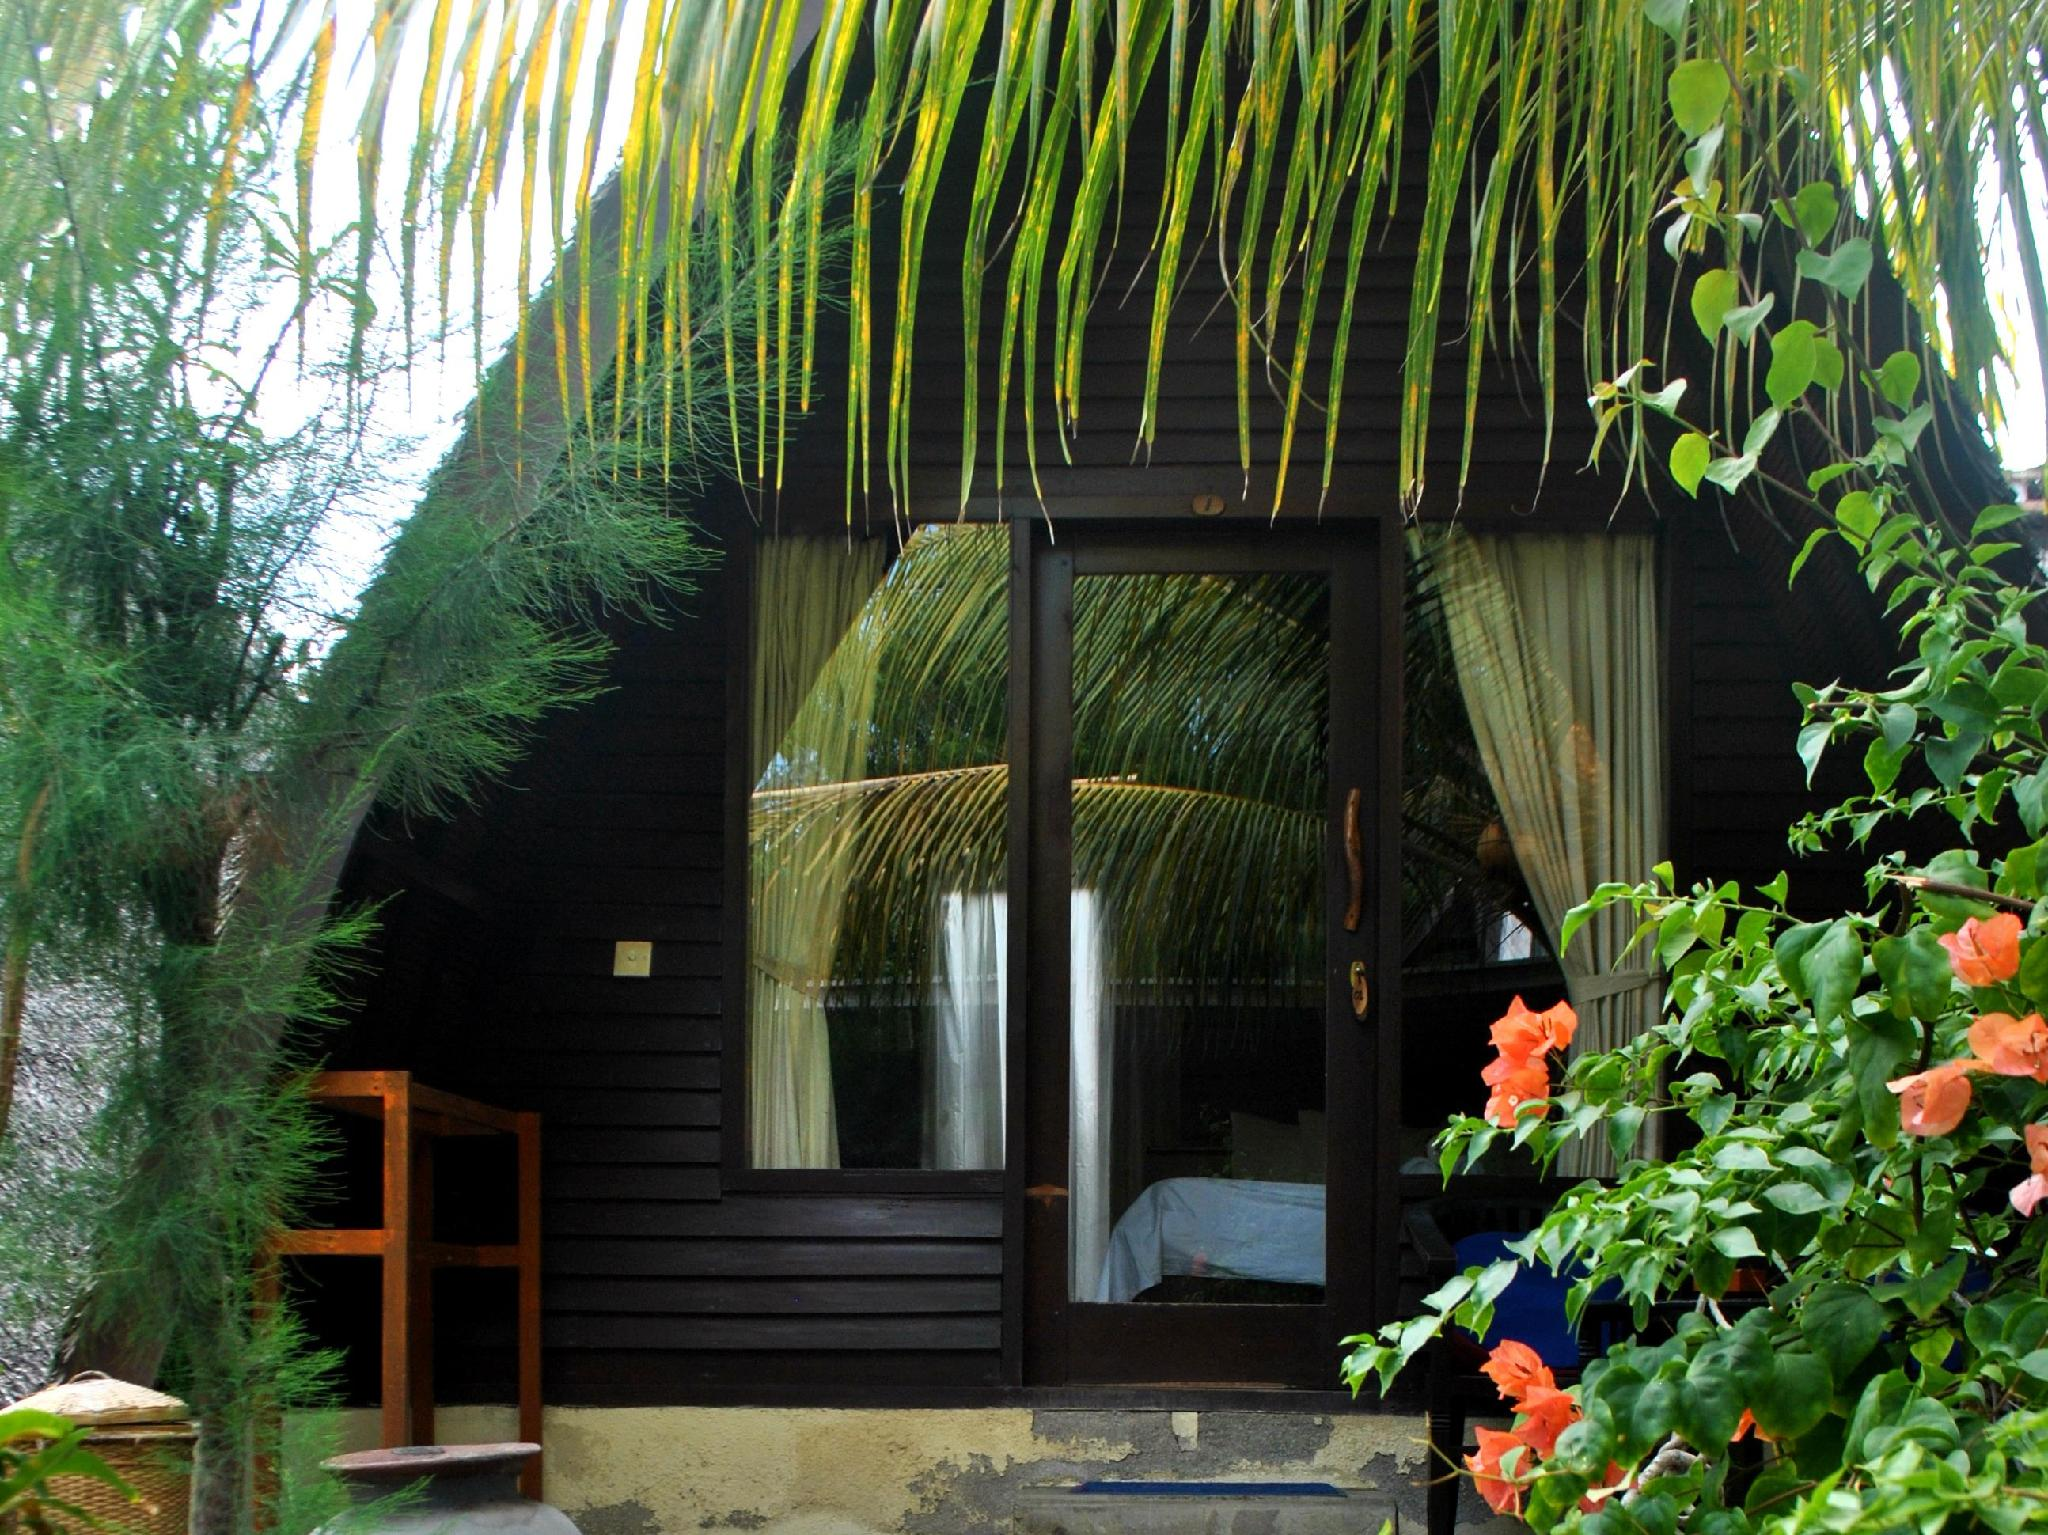 Superior Ozzy Cottages And Bungalows Gili Part - 12: Best Price On Ozzy Cottages U0026 Bungalow In Lombok + Reviews!